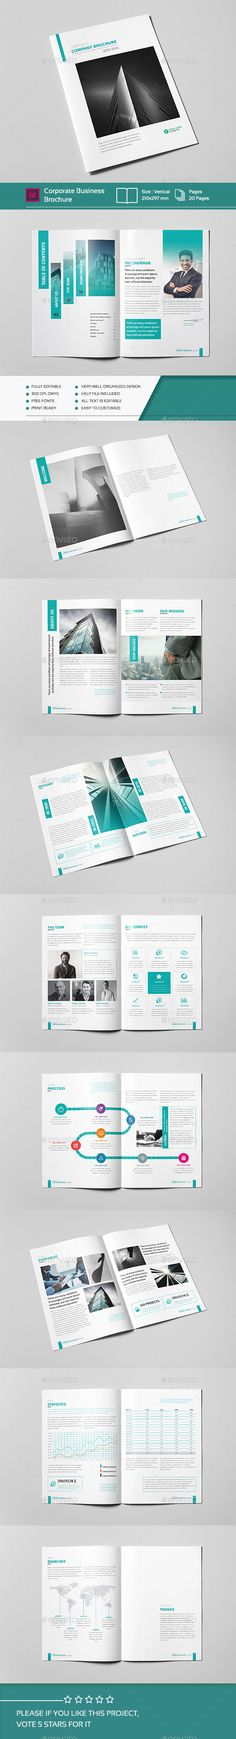 The Creative Brochure - Square Brochure template, Brochures and - corporate profile template